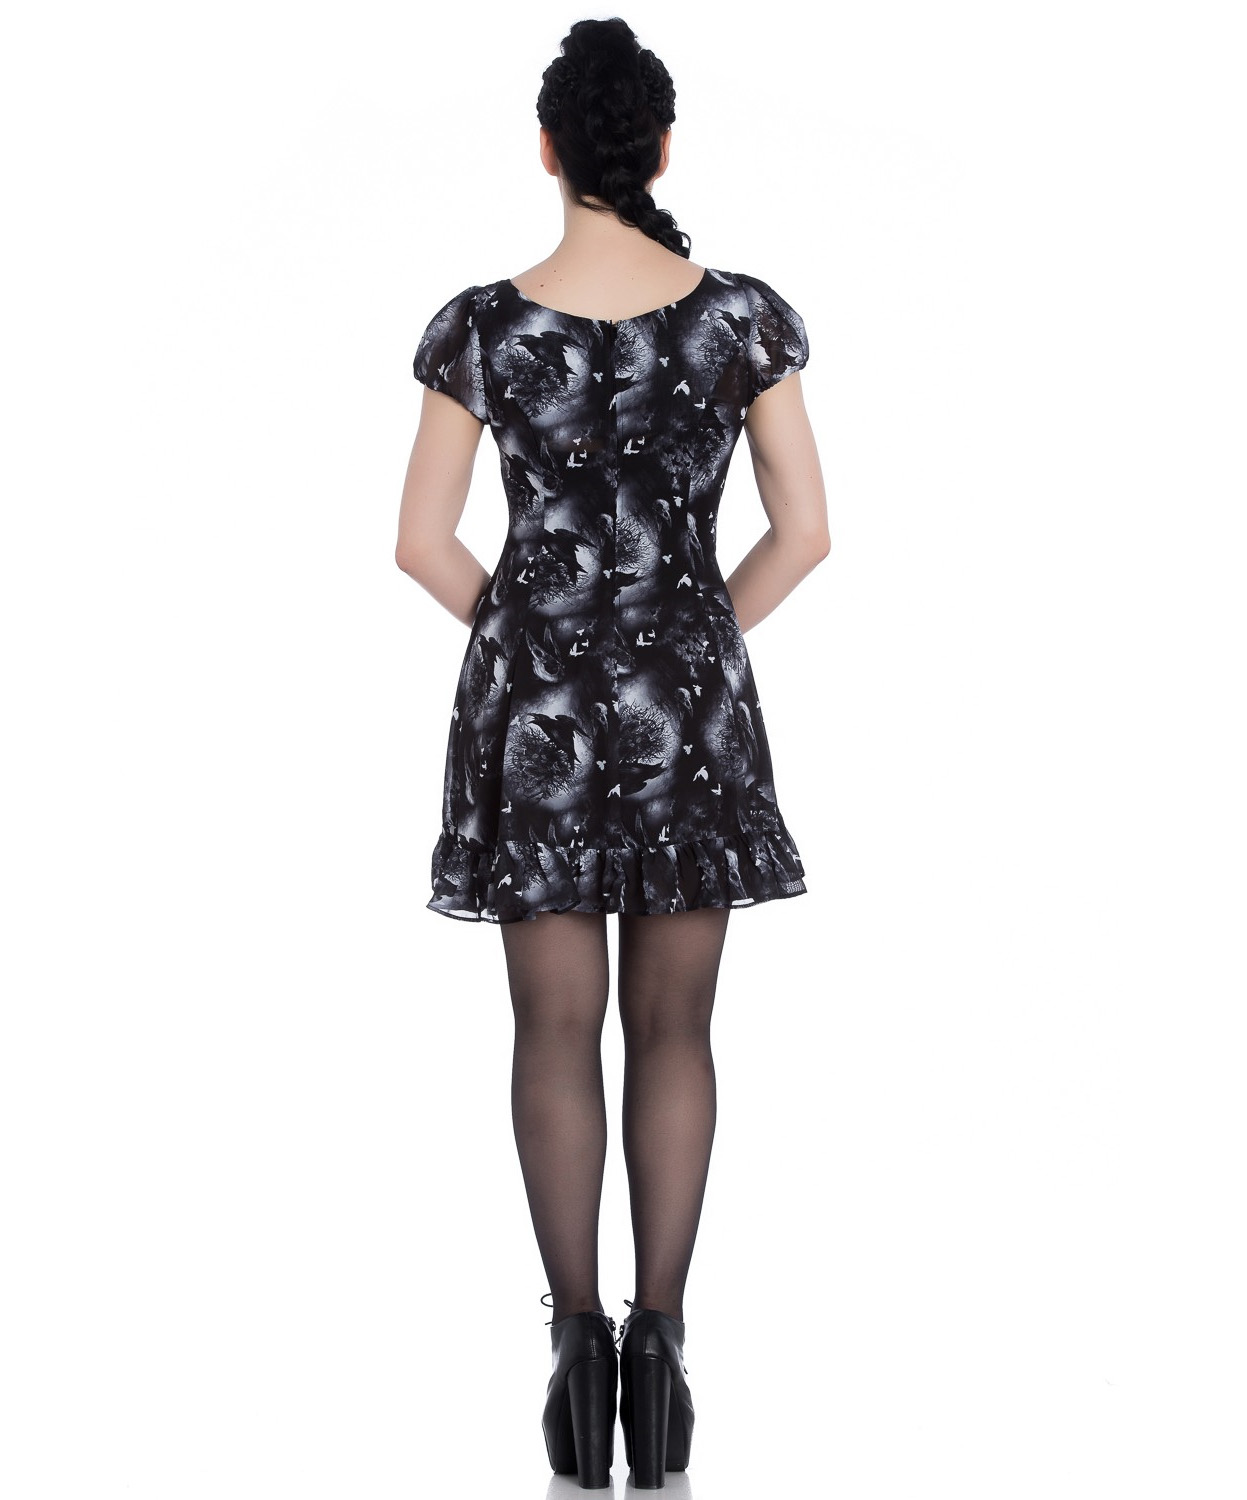 Hell-Bunny-Alchemy-Gothic-Black-Skater-Mini-Dress-ASH-Crows-Skulls-All-Sizes thumbnail 9